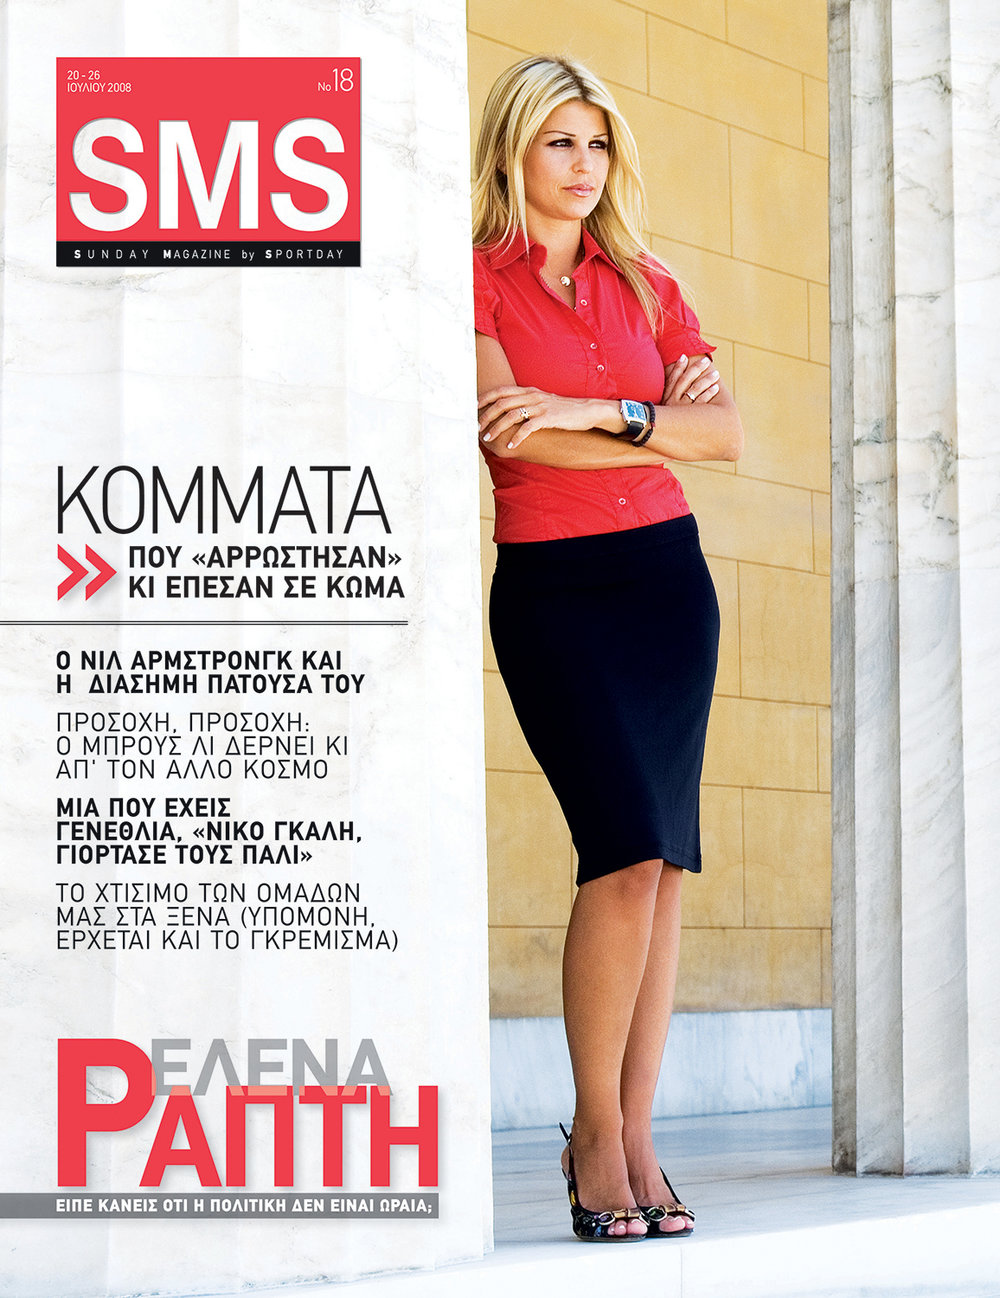 Elena Rapti / politician / SMS Sportday No 18